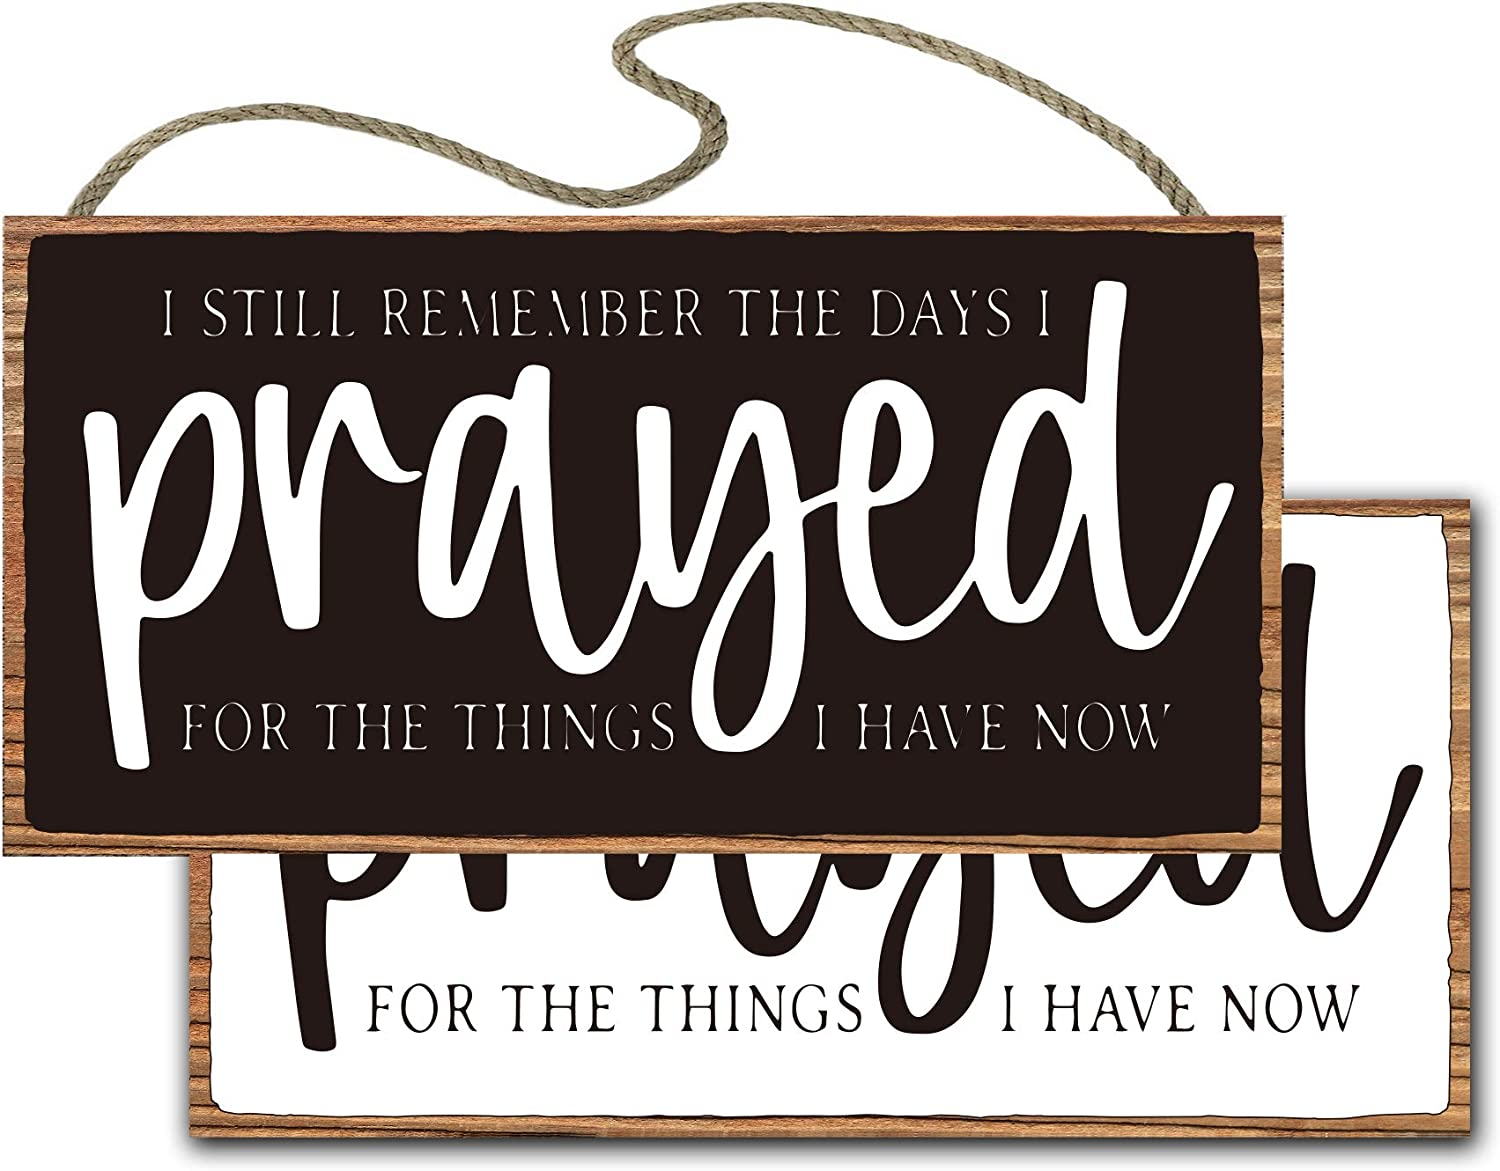 vizuzi Christian Wall Decor, I Still Remember The Days I Prayed for The Things I Have Now Christian Sign, Decor, Wall Art